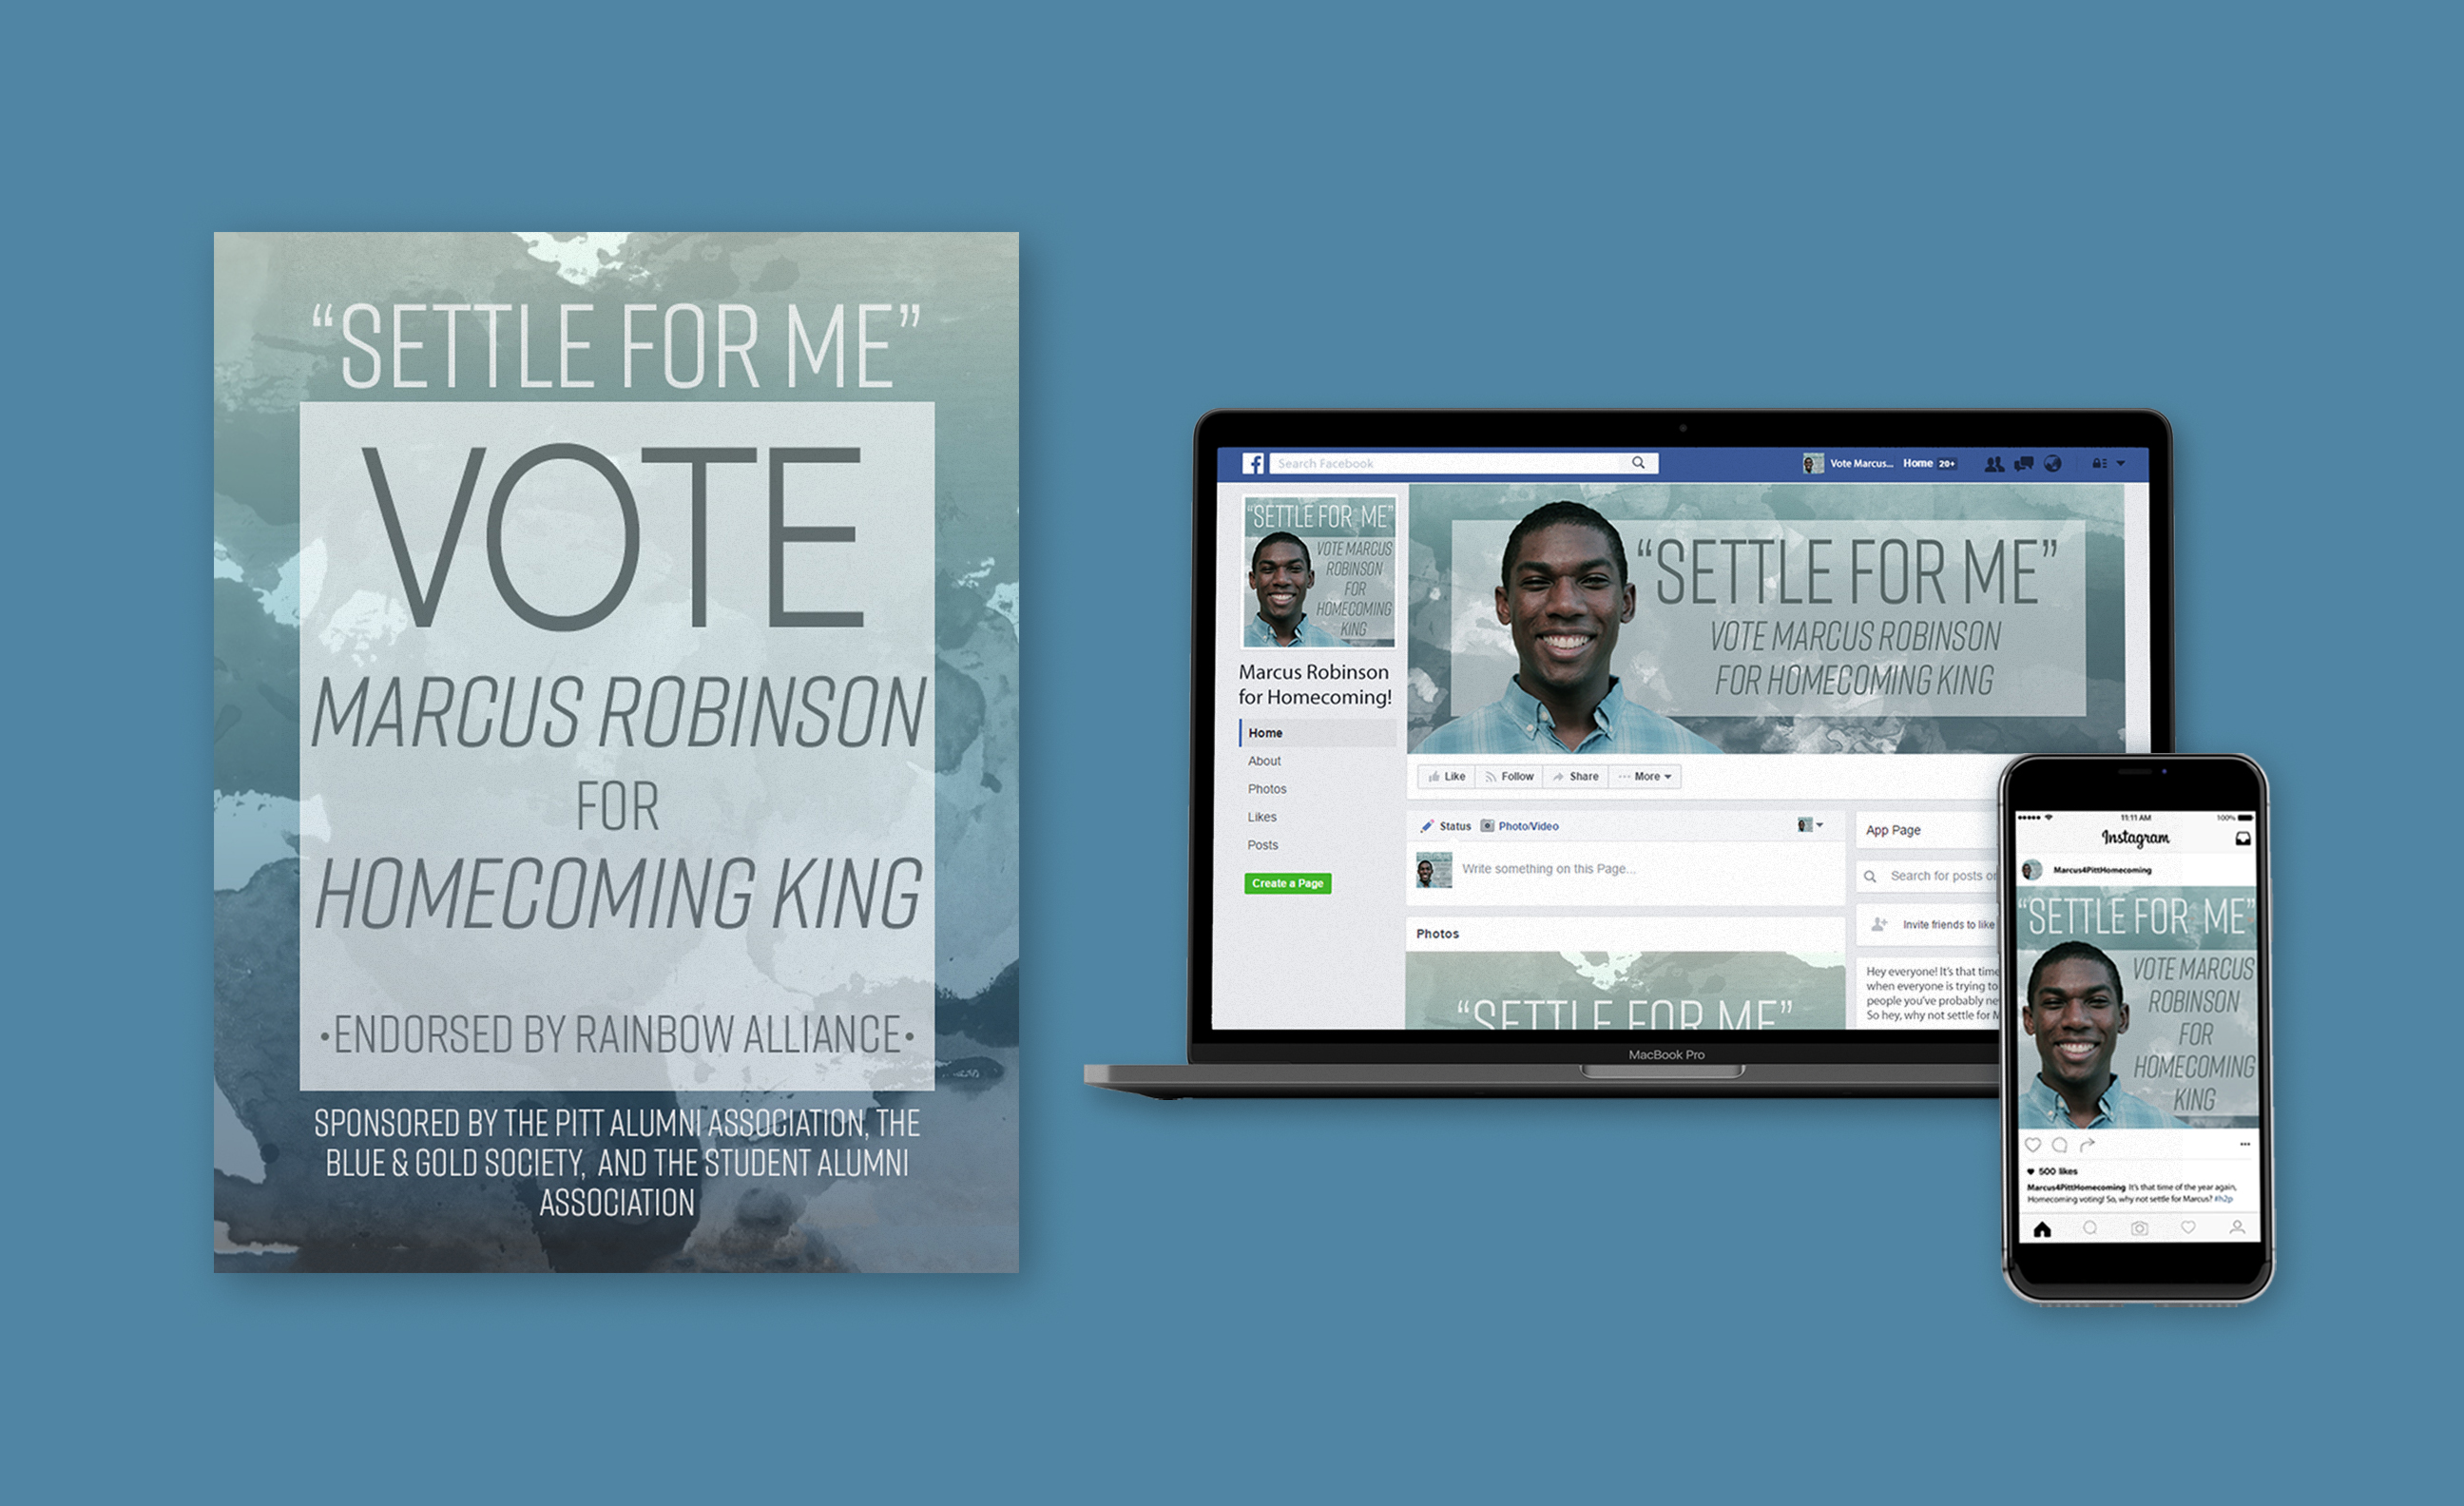 """Mockups of a homecoming campaign poster, Facebook banner shown on a laptop, and Instagram post shown on an iPhone, over a blue background. Each of the designs shares a similar, seafoam green and dark teal textured background with the tagline """"Settle for Me"""" and a photo of the candidate, Marcus Robinson."""